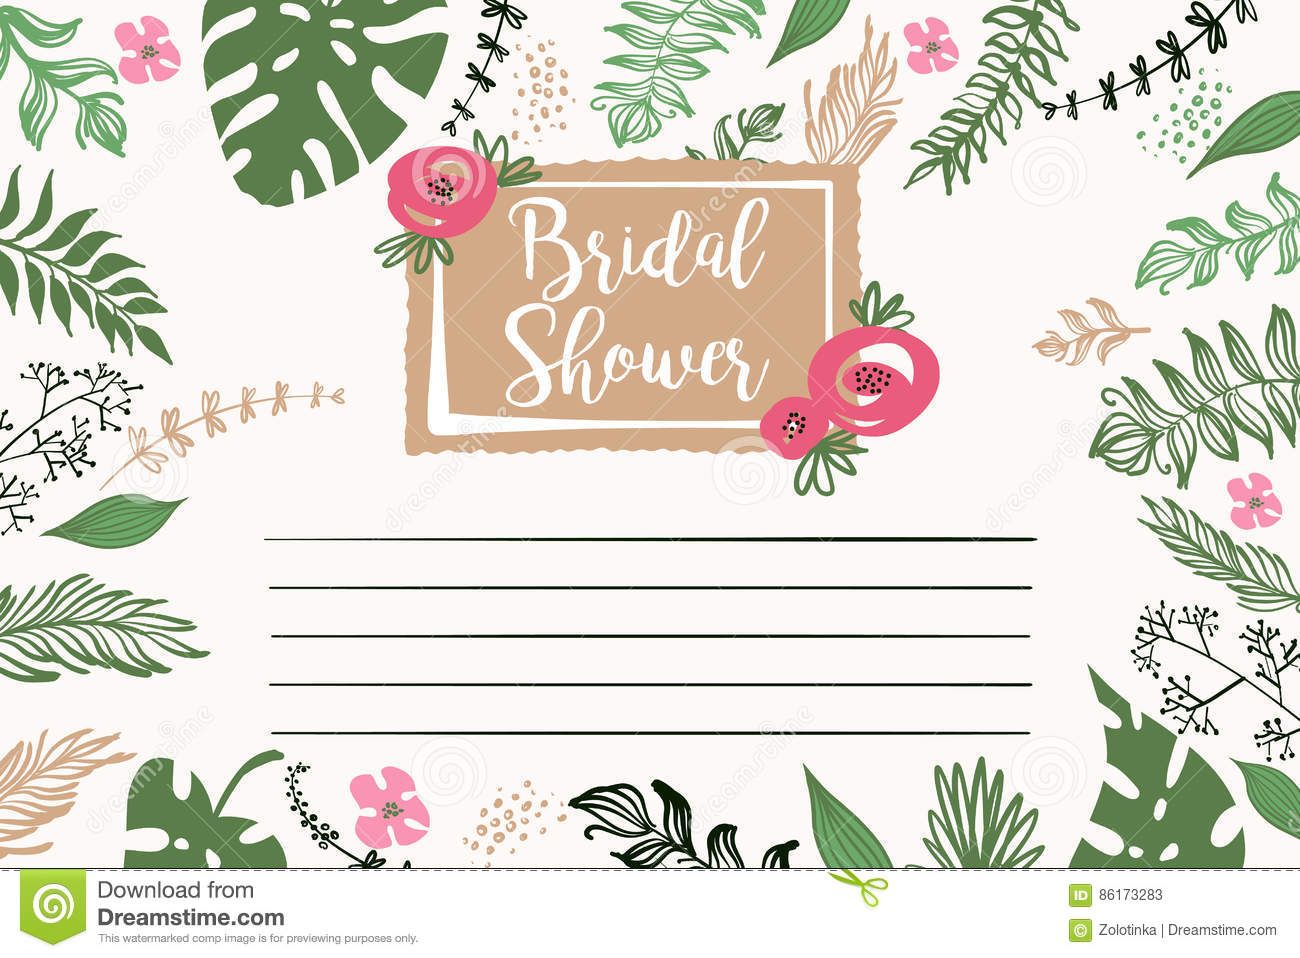 Bridal shower template invitation with text please join us and download bridal shower template invitation with text please join us and floral background stock maxwellsz